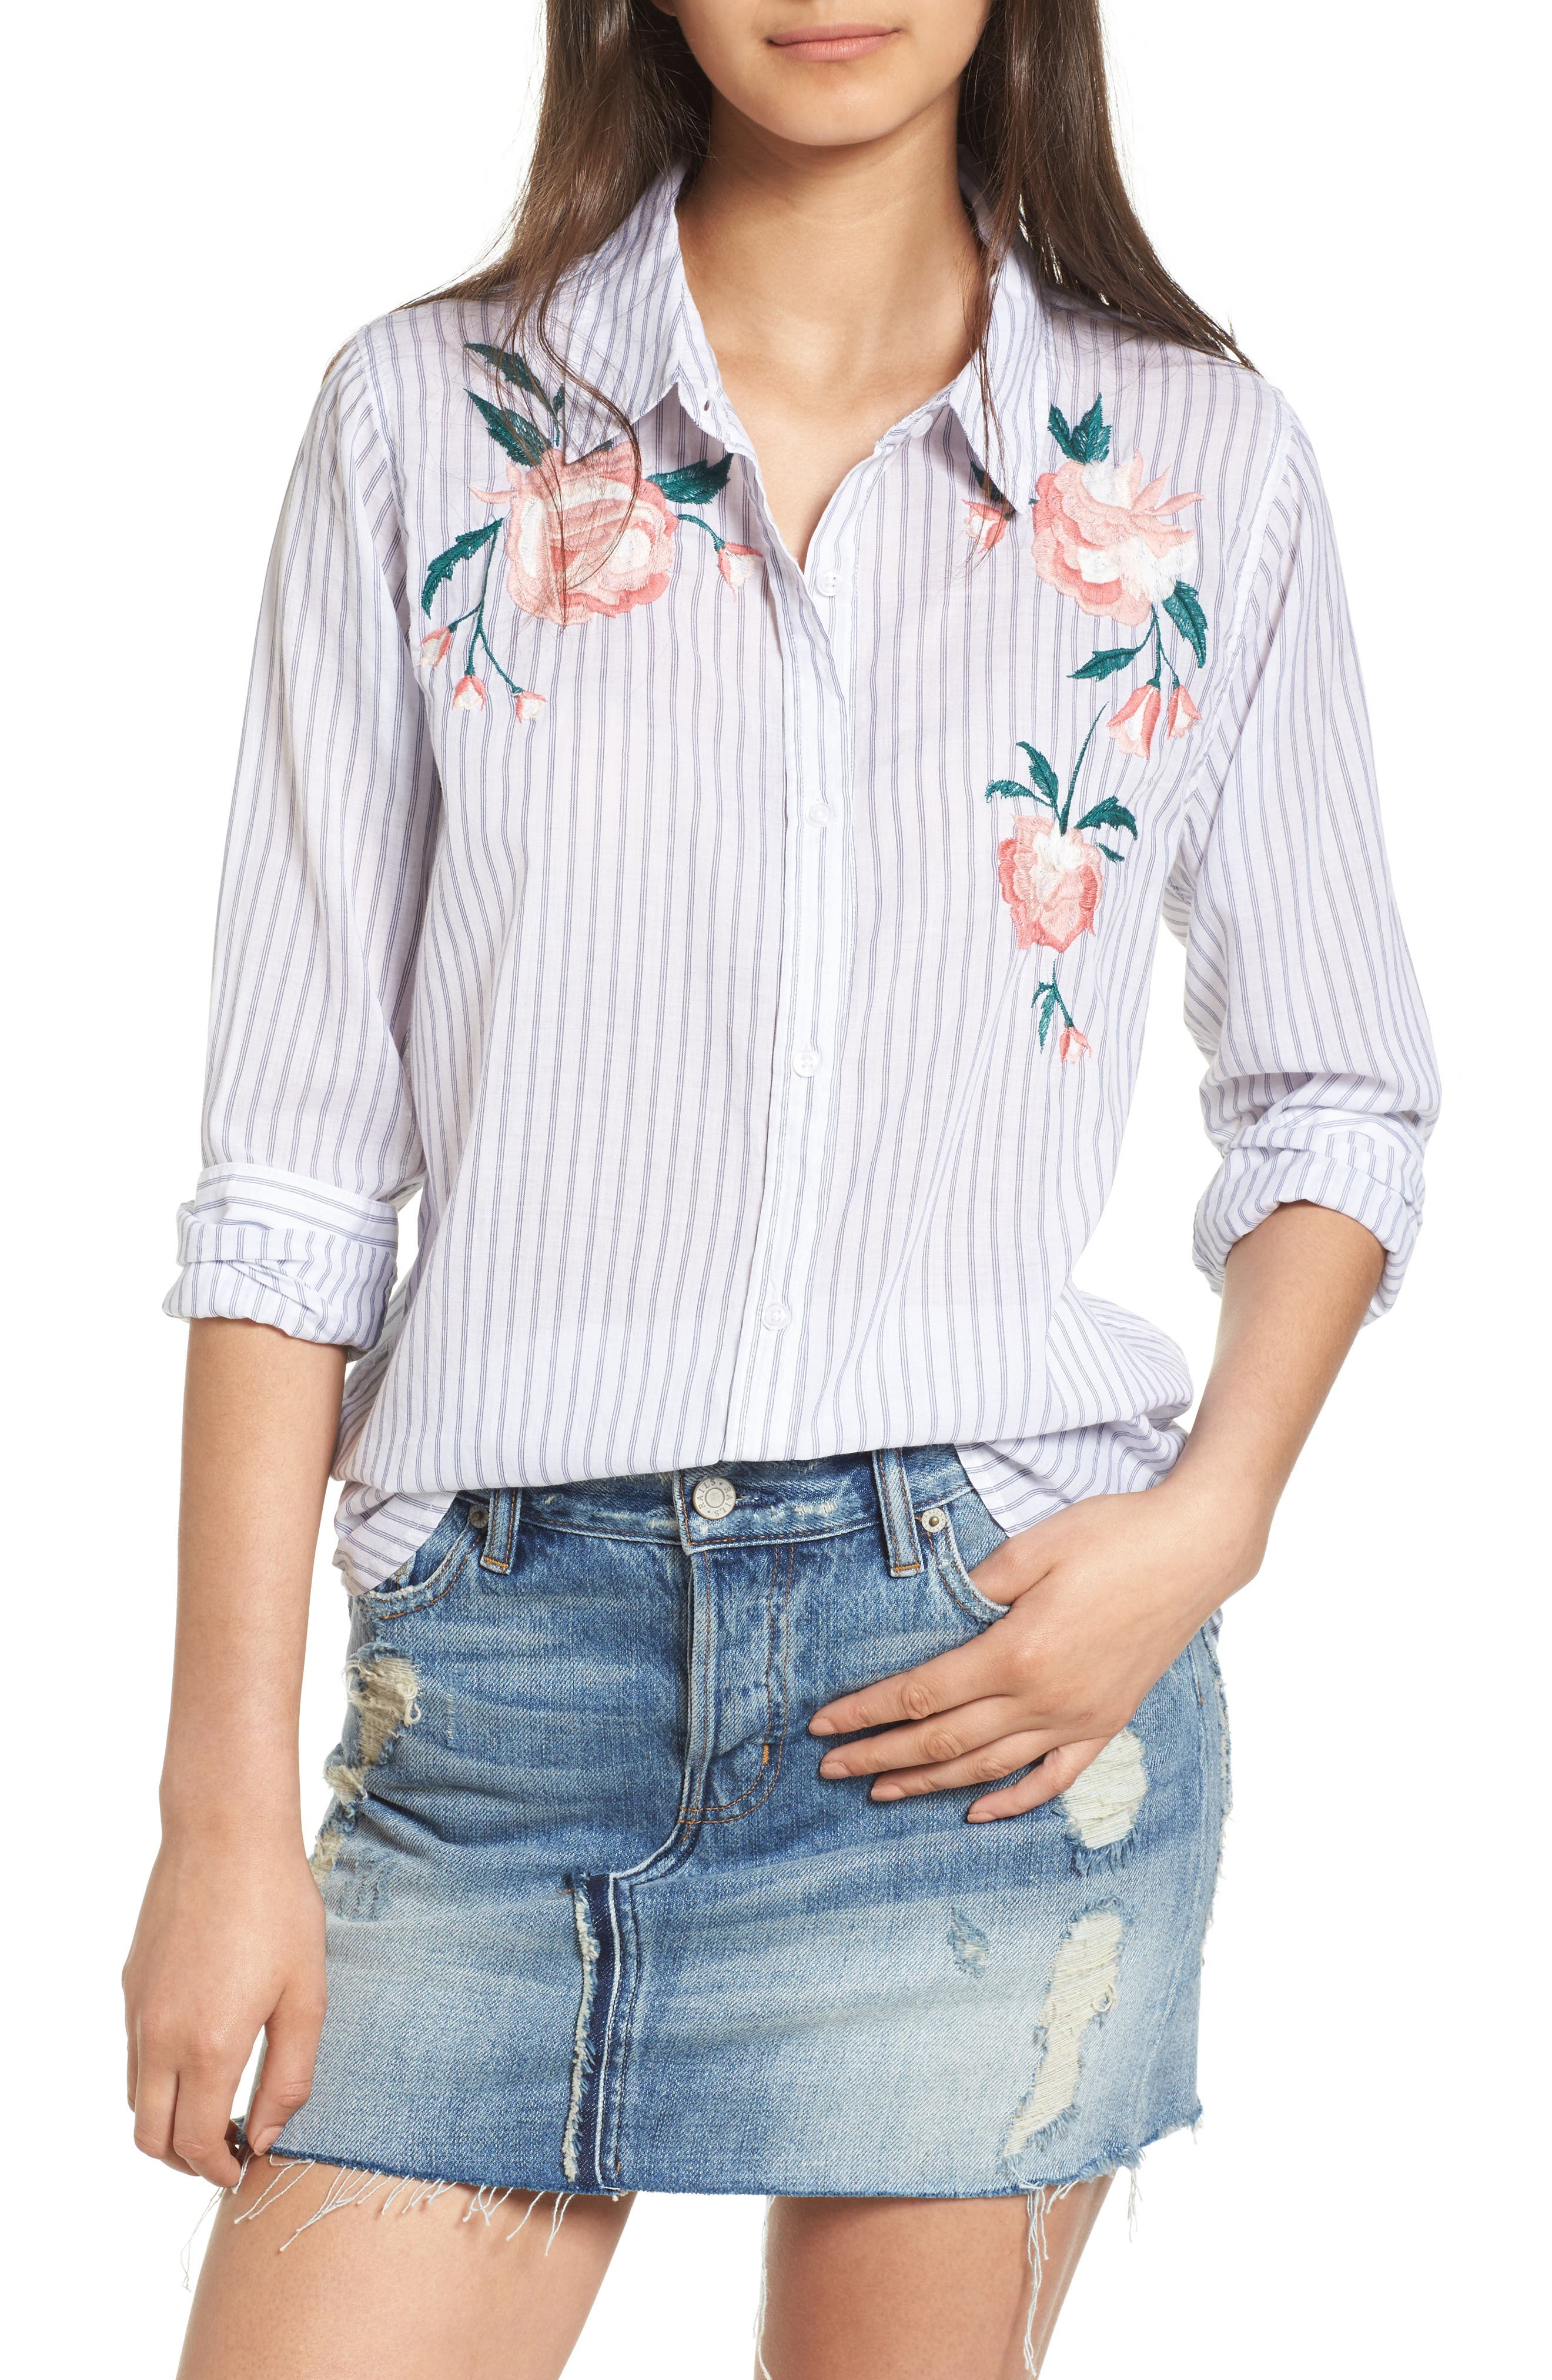 Nevin Embroidered Shirt,                         Main,                         color, STRIPE PINK FLORAL EMBROIDERY